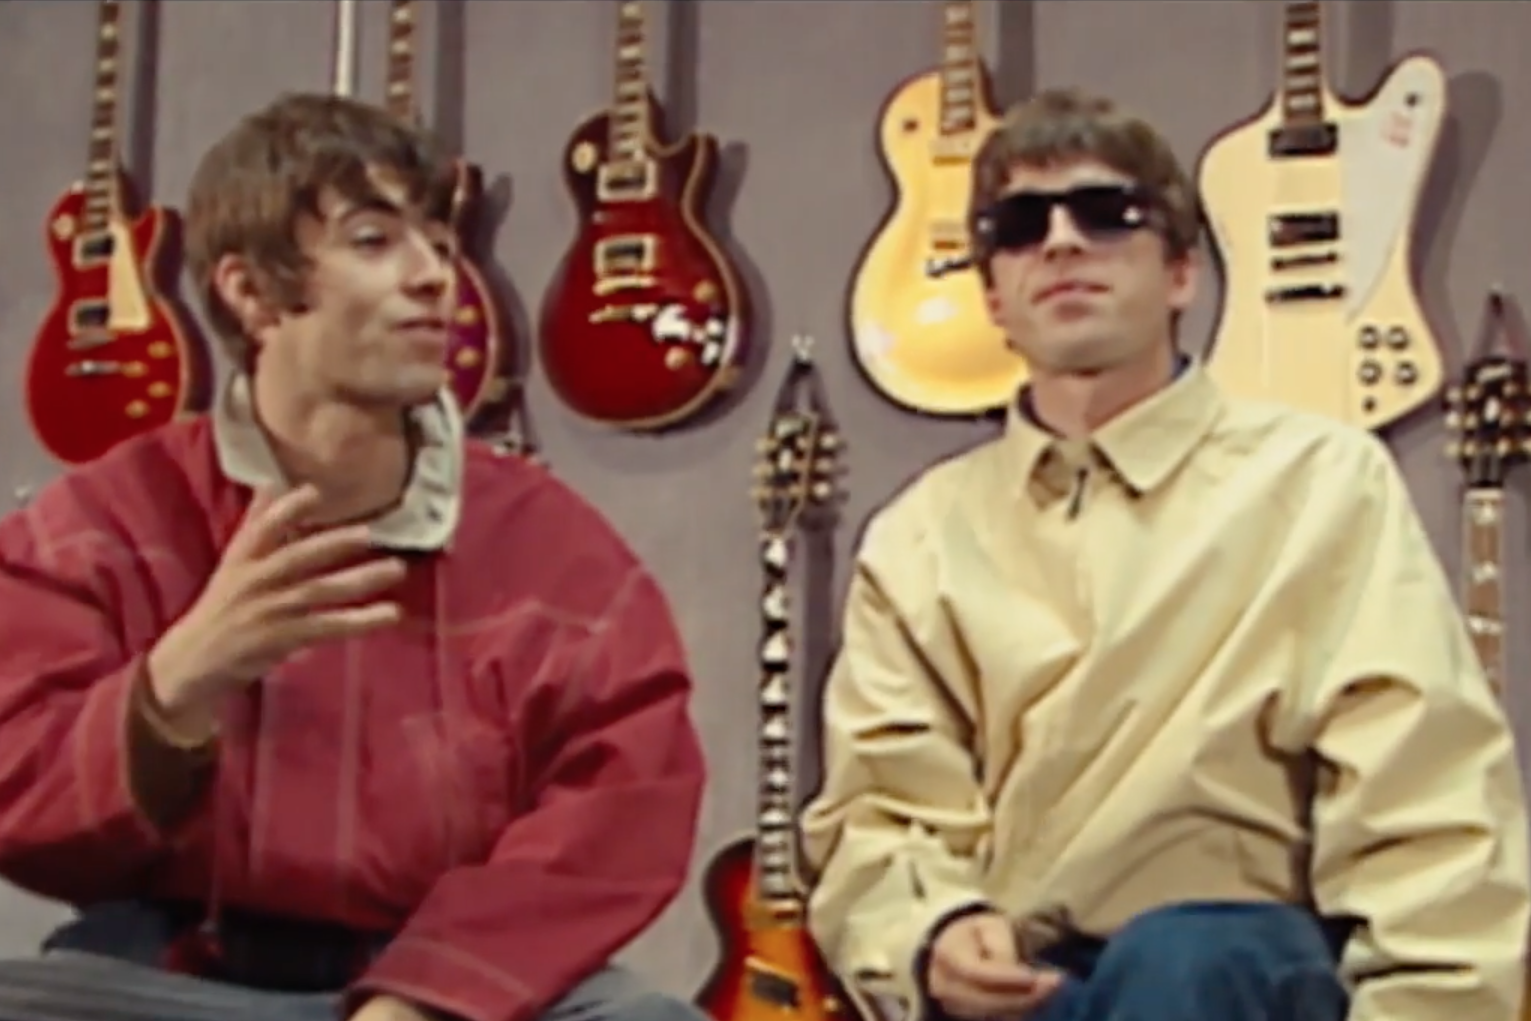 Watch Noel Gallagher Explain Why He's a Cat and Liam's a Dog